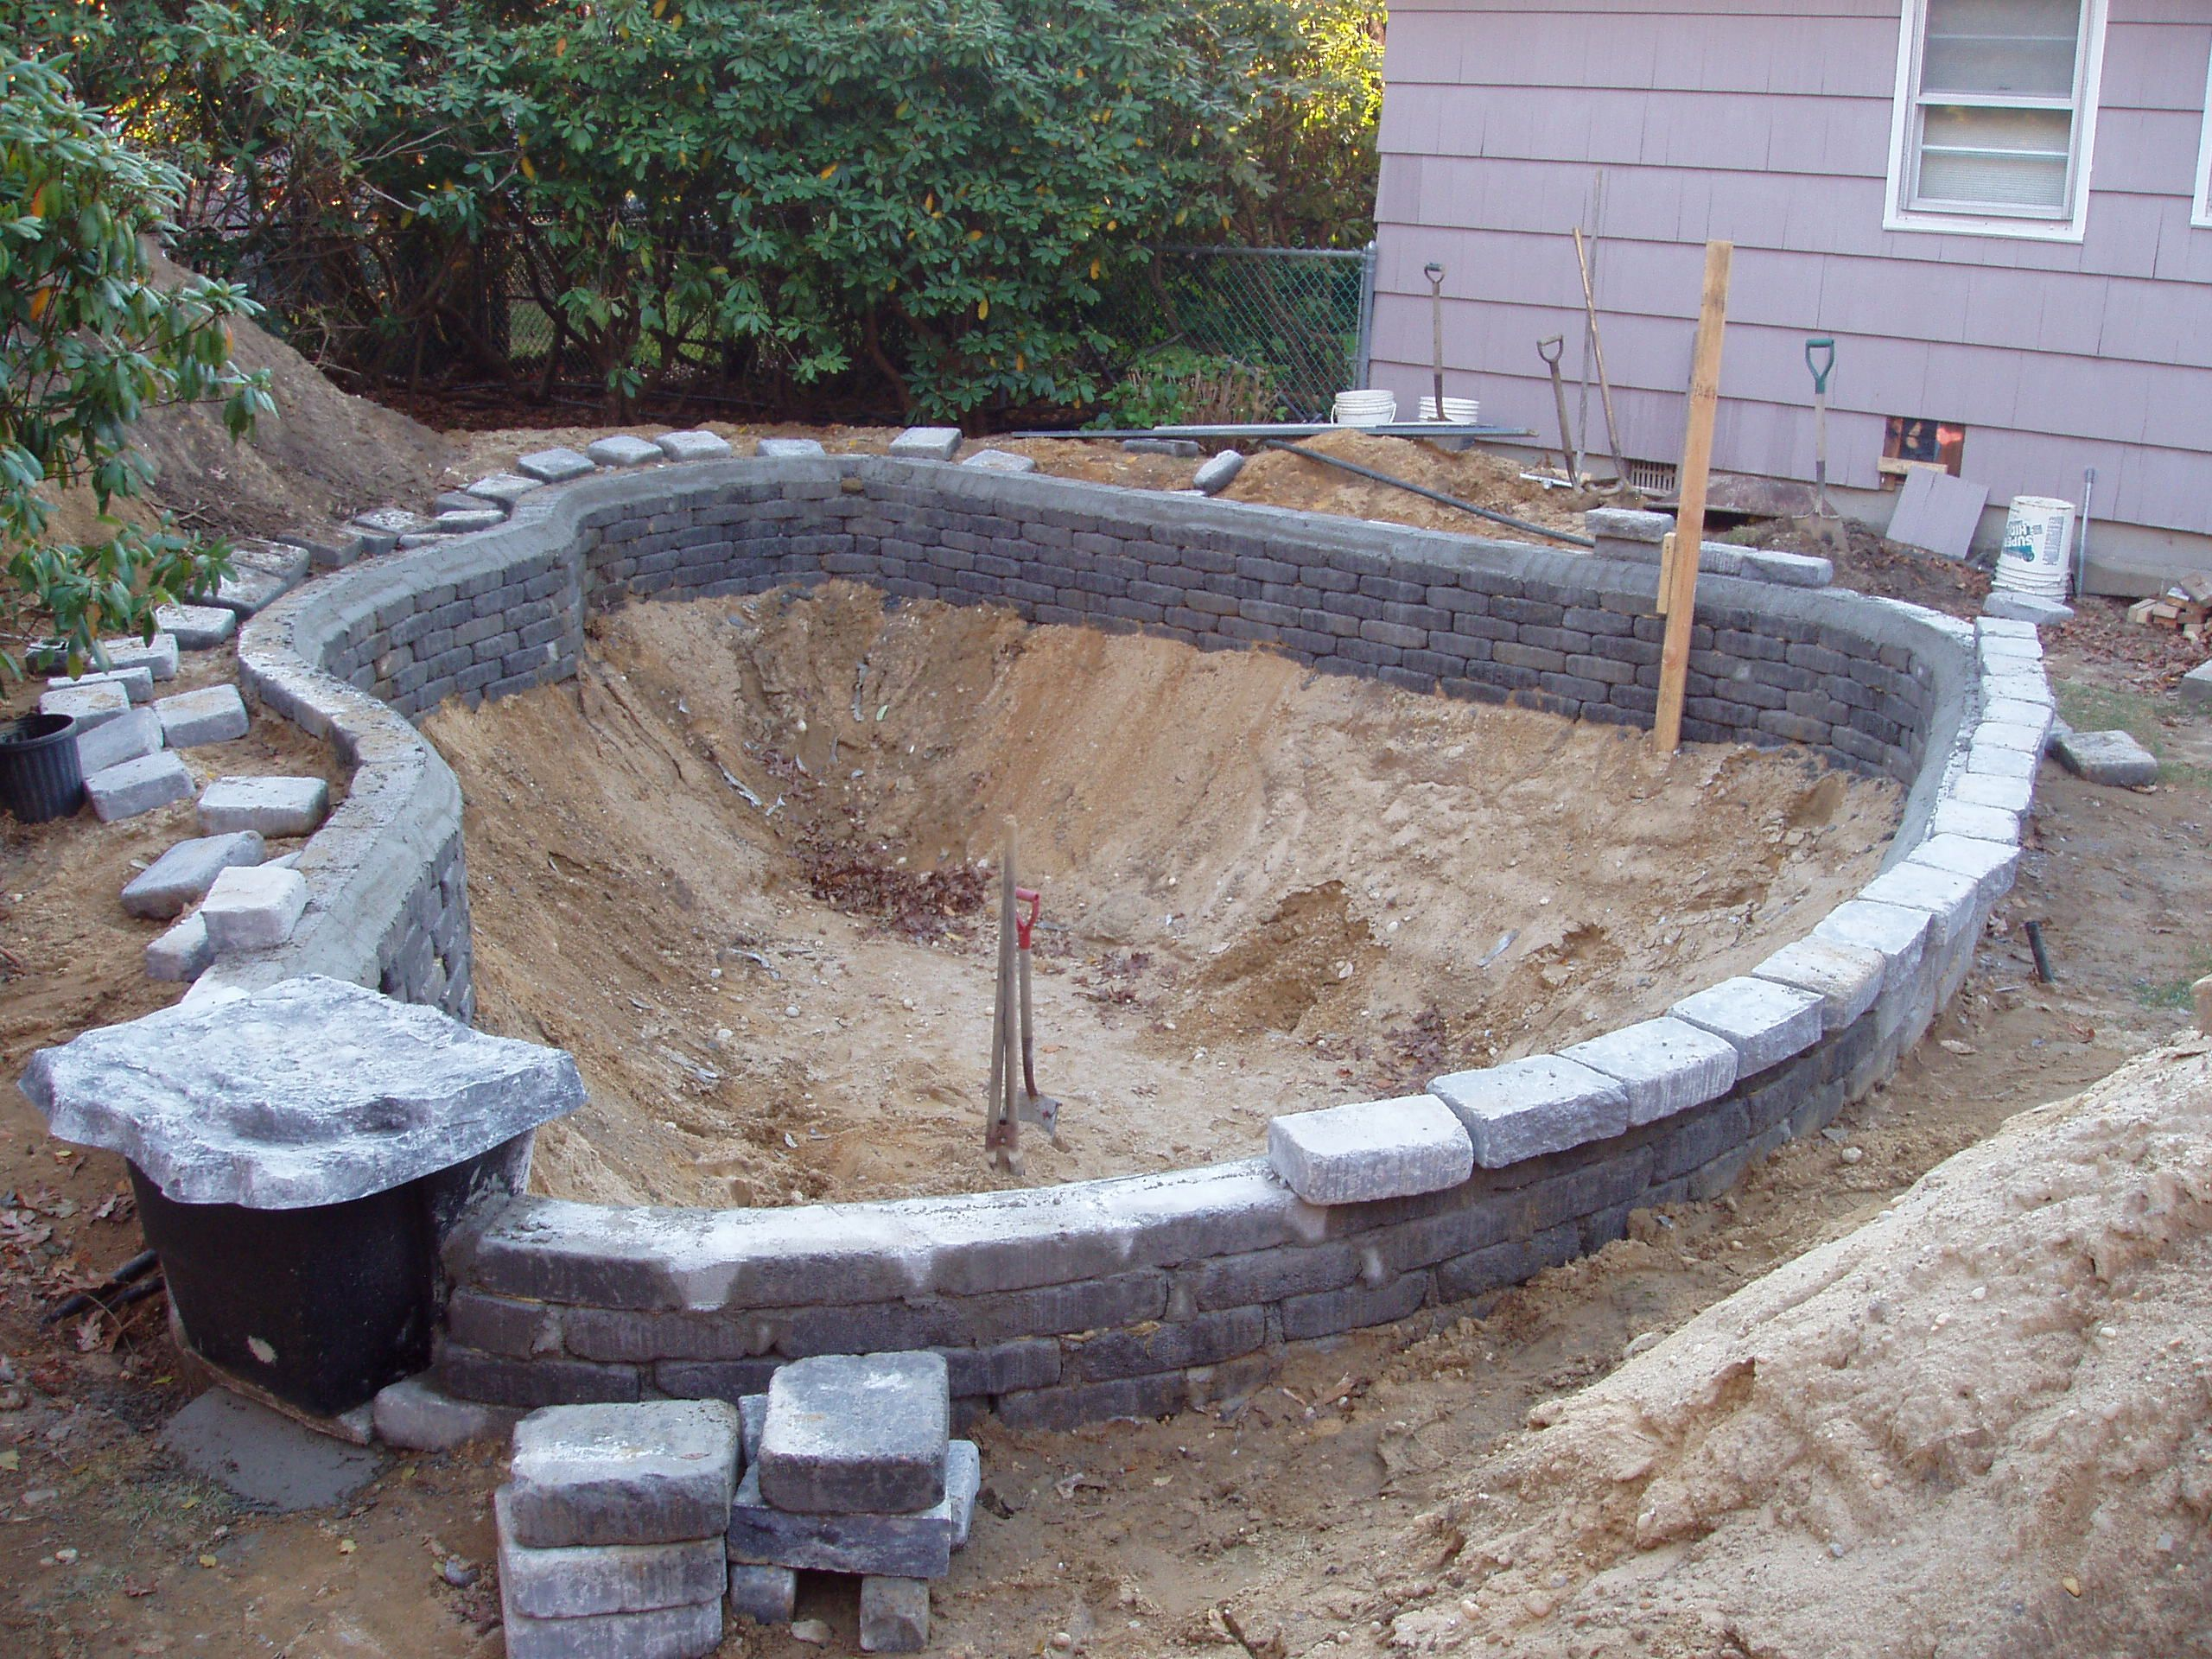 Pond design and construction google search aquaponics for Building a koi pond